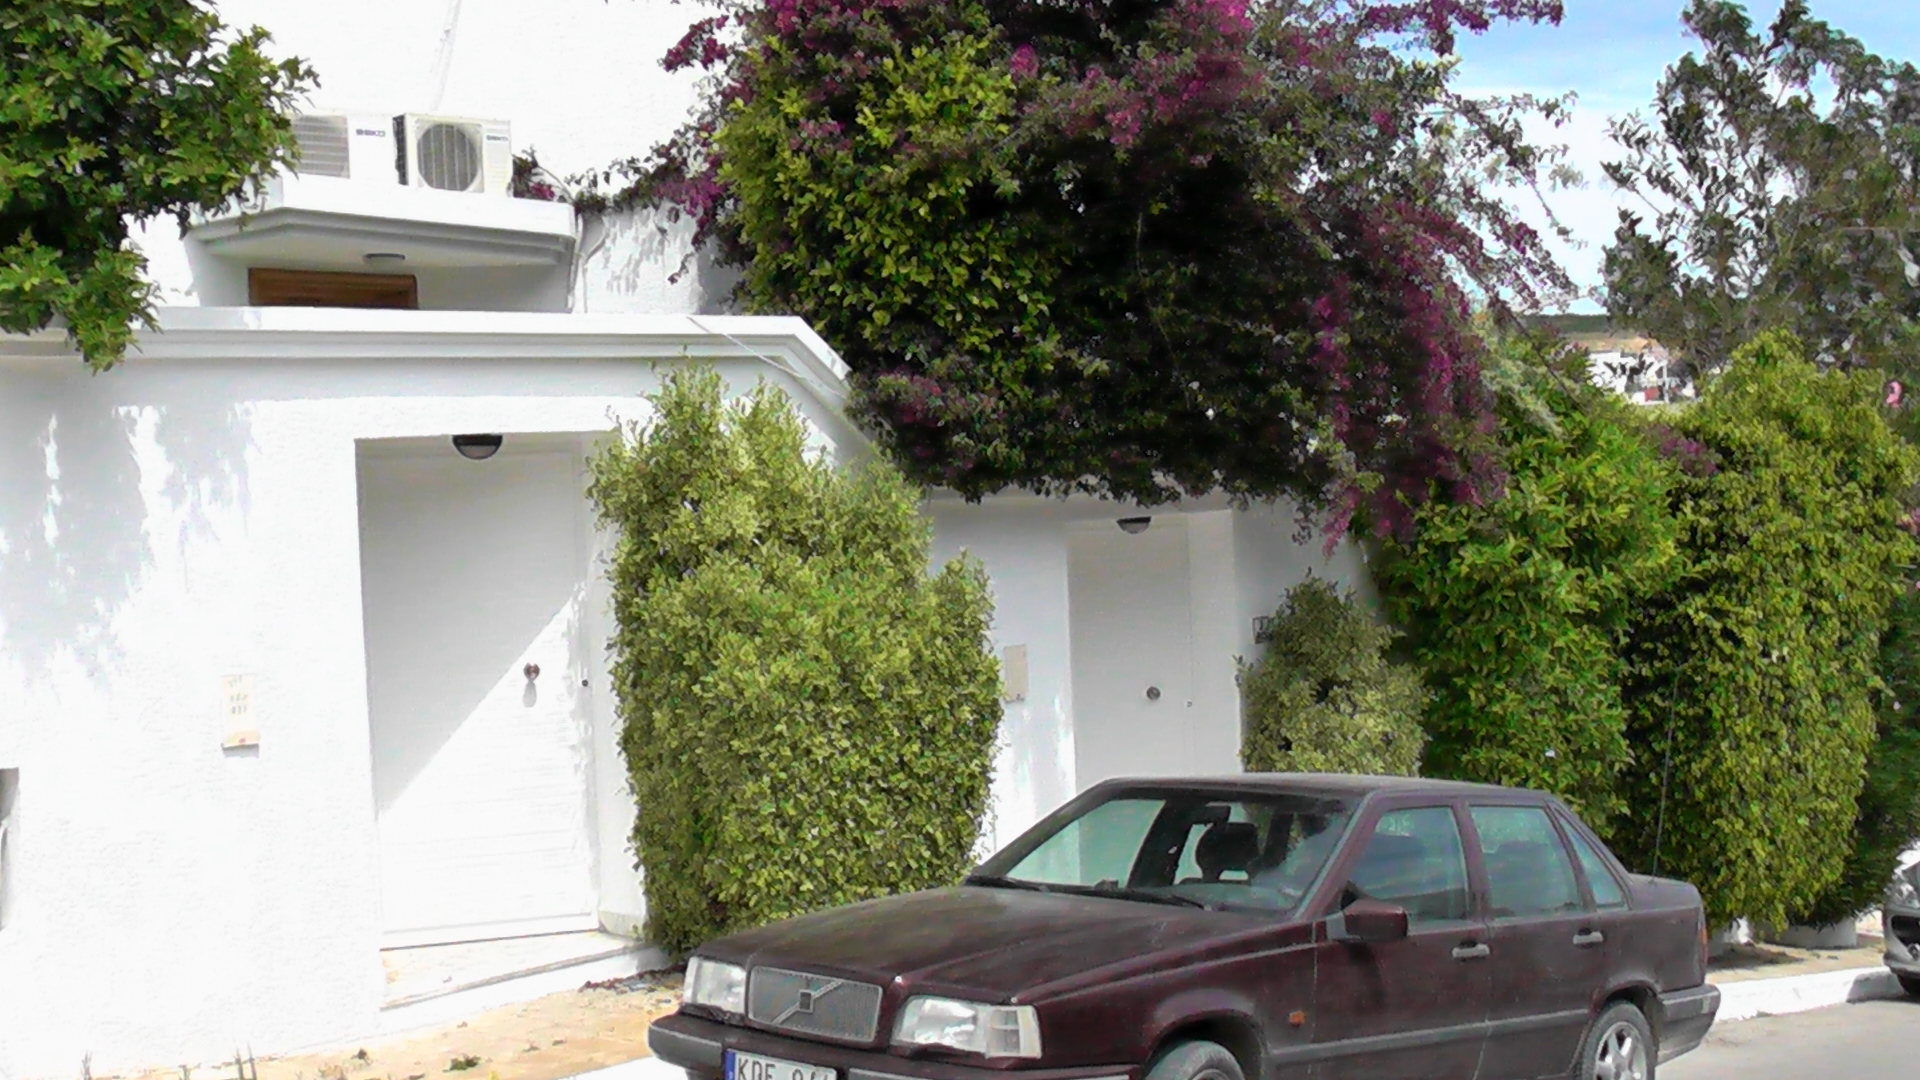 Location annuelle tunisie villa maison appartement tunis for Jardin 2000 tunisie